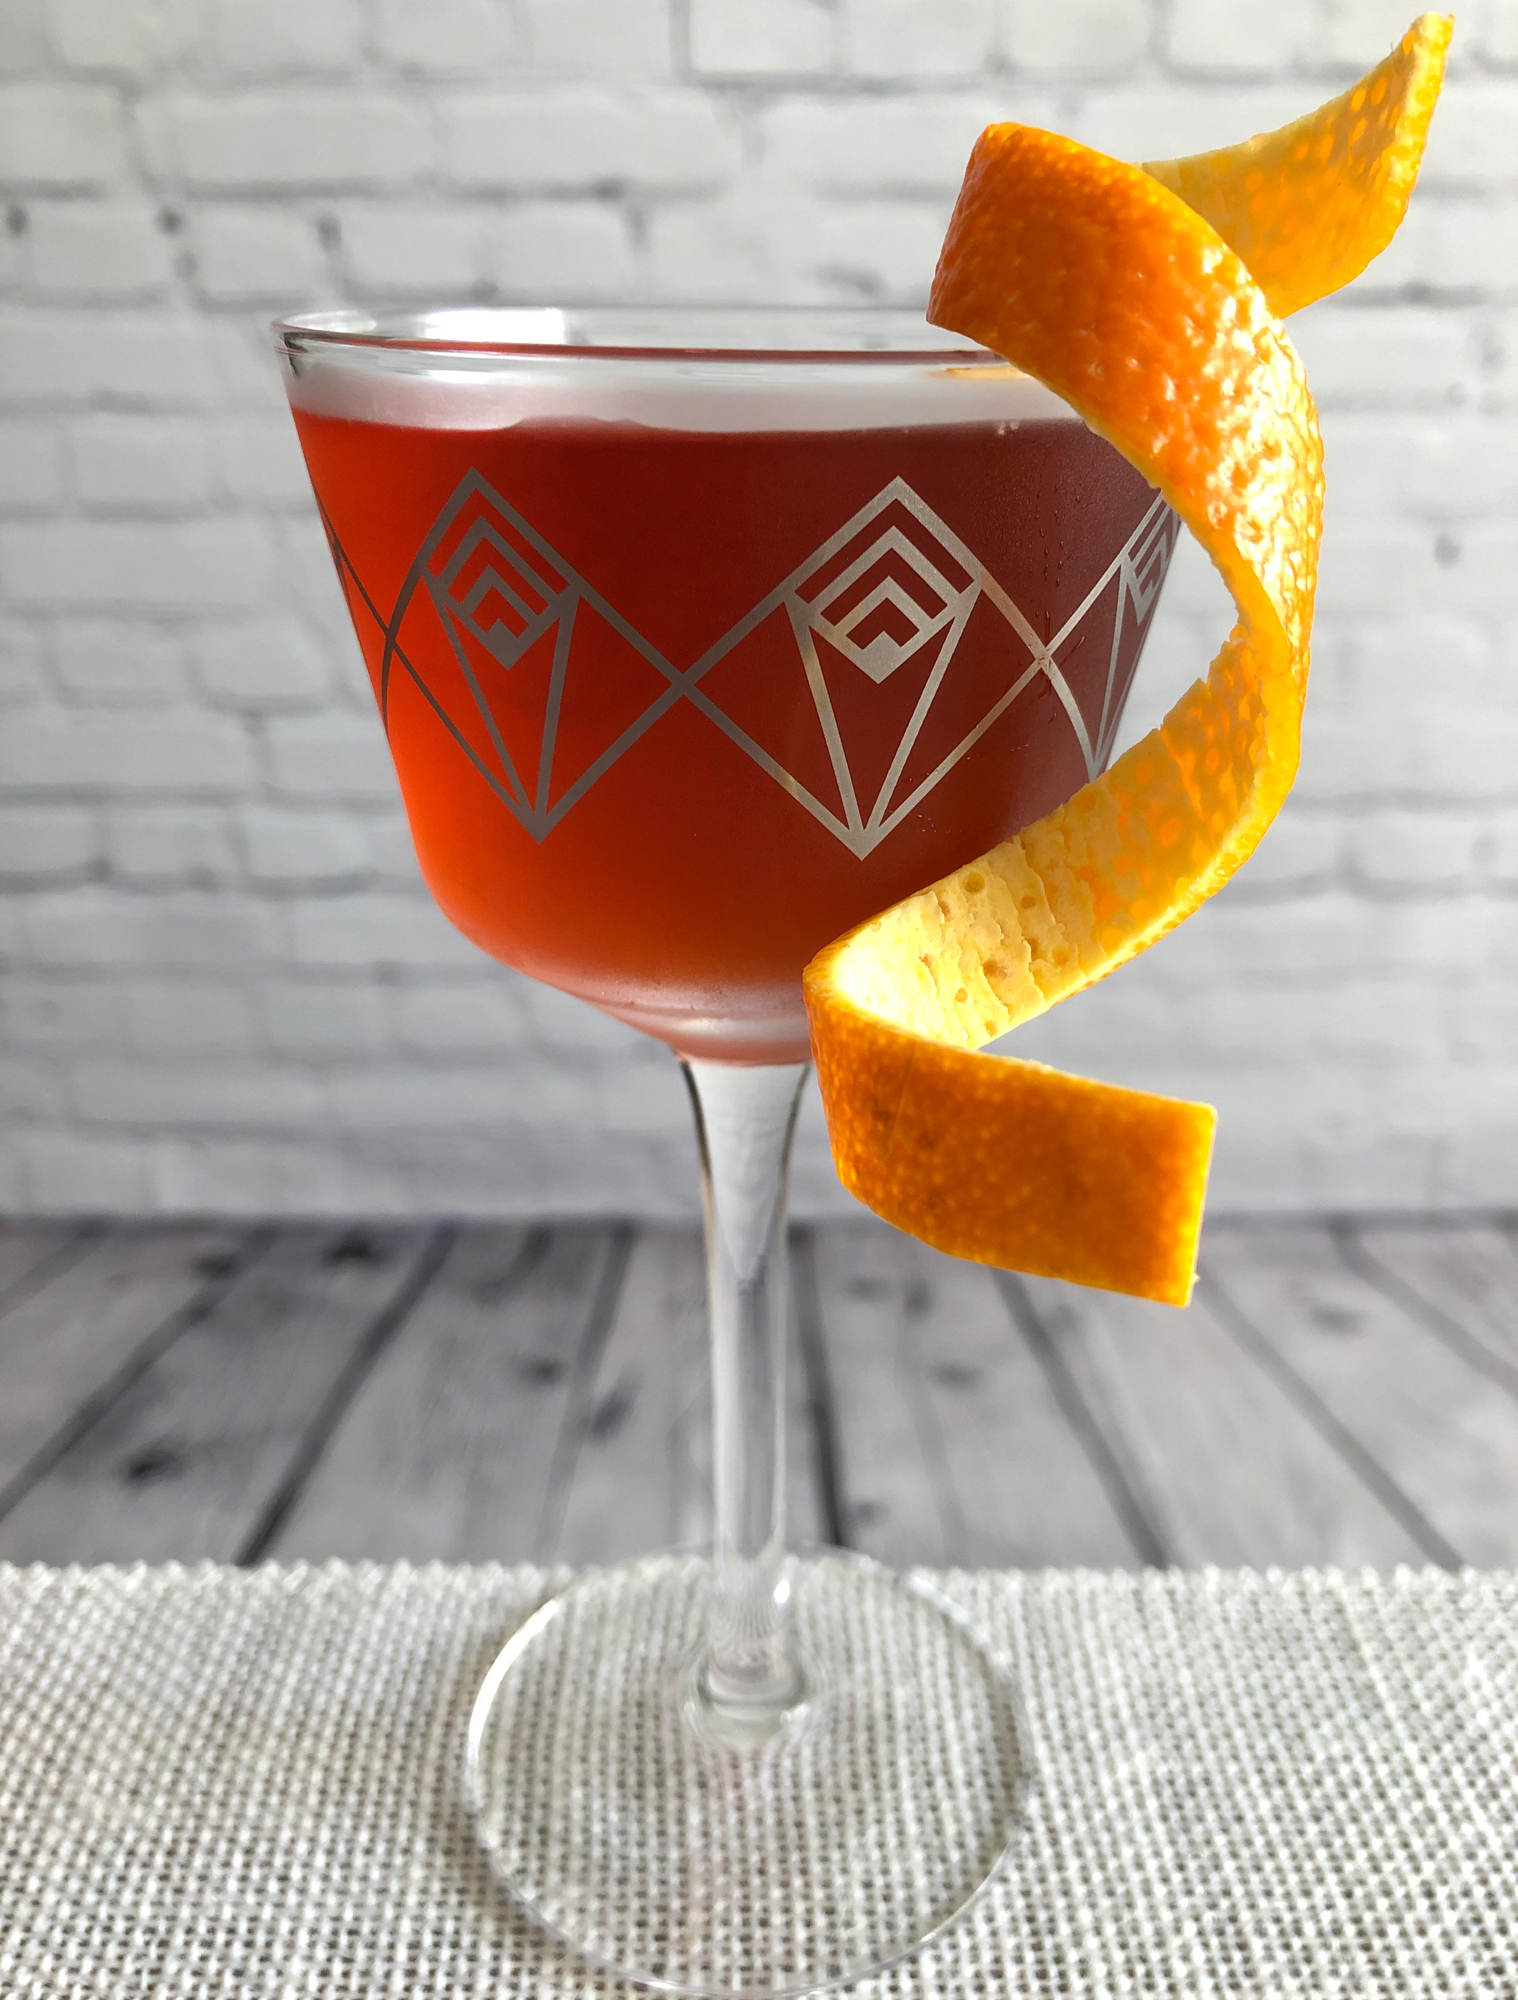 An example of the The Italian Job, the mixed drink (cocktail), by Joseph Akhavan, Mabel, Paris, featuring Smith & Cross Traditional Jamaica Rum, Cocchi Americano Bianco, Aperitivo Cappelletti, Byrrh Grand Quinquina, and orange bitters; photo by Lee Edwards